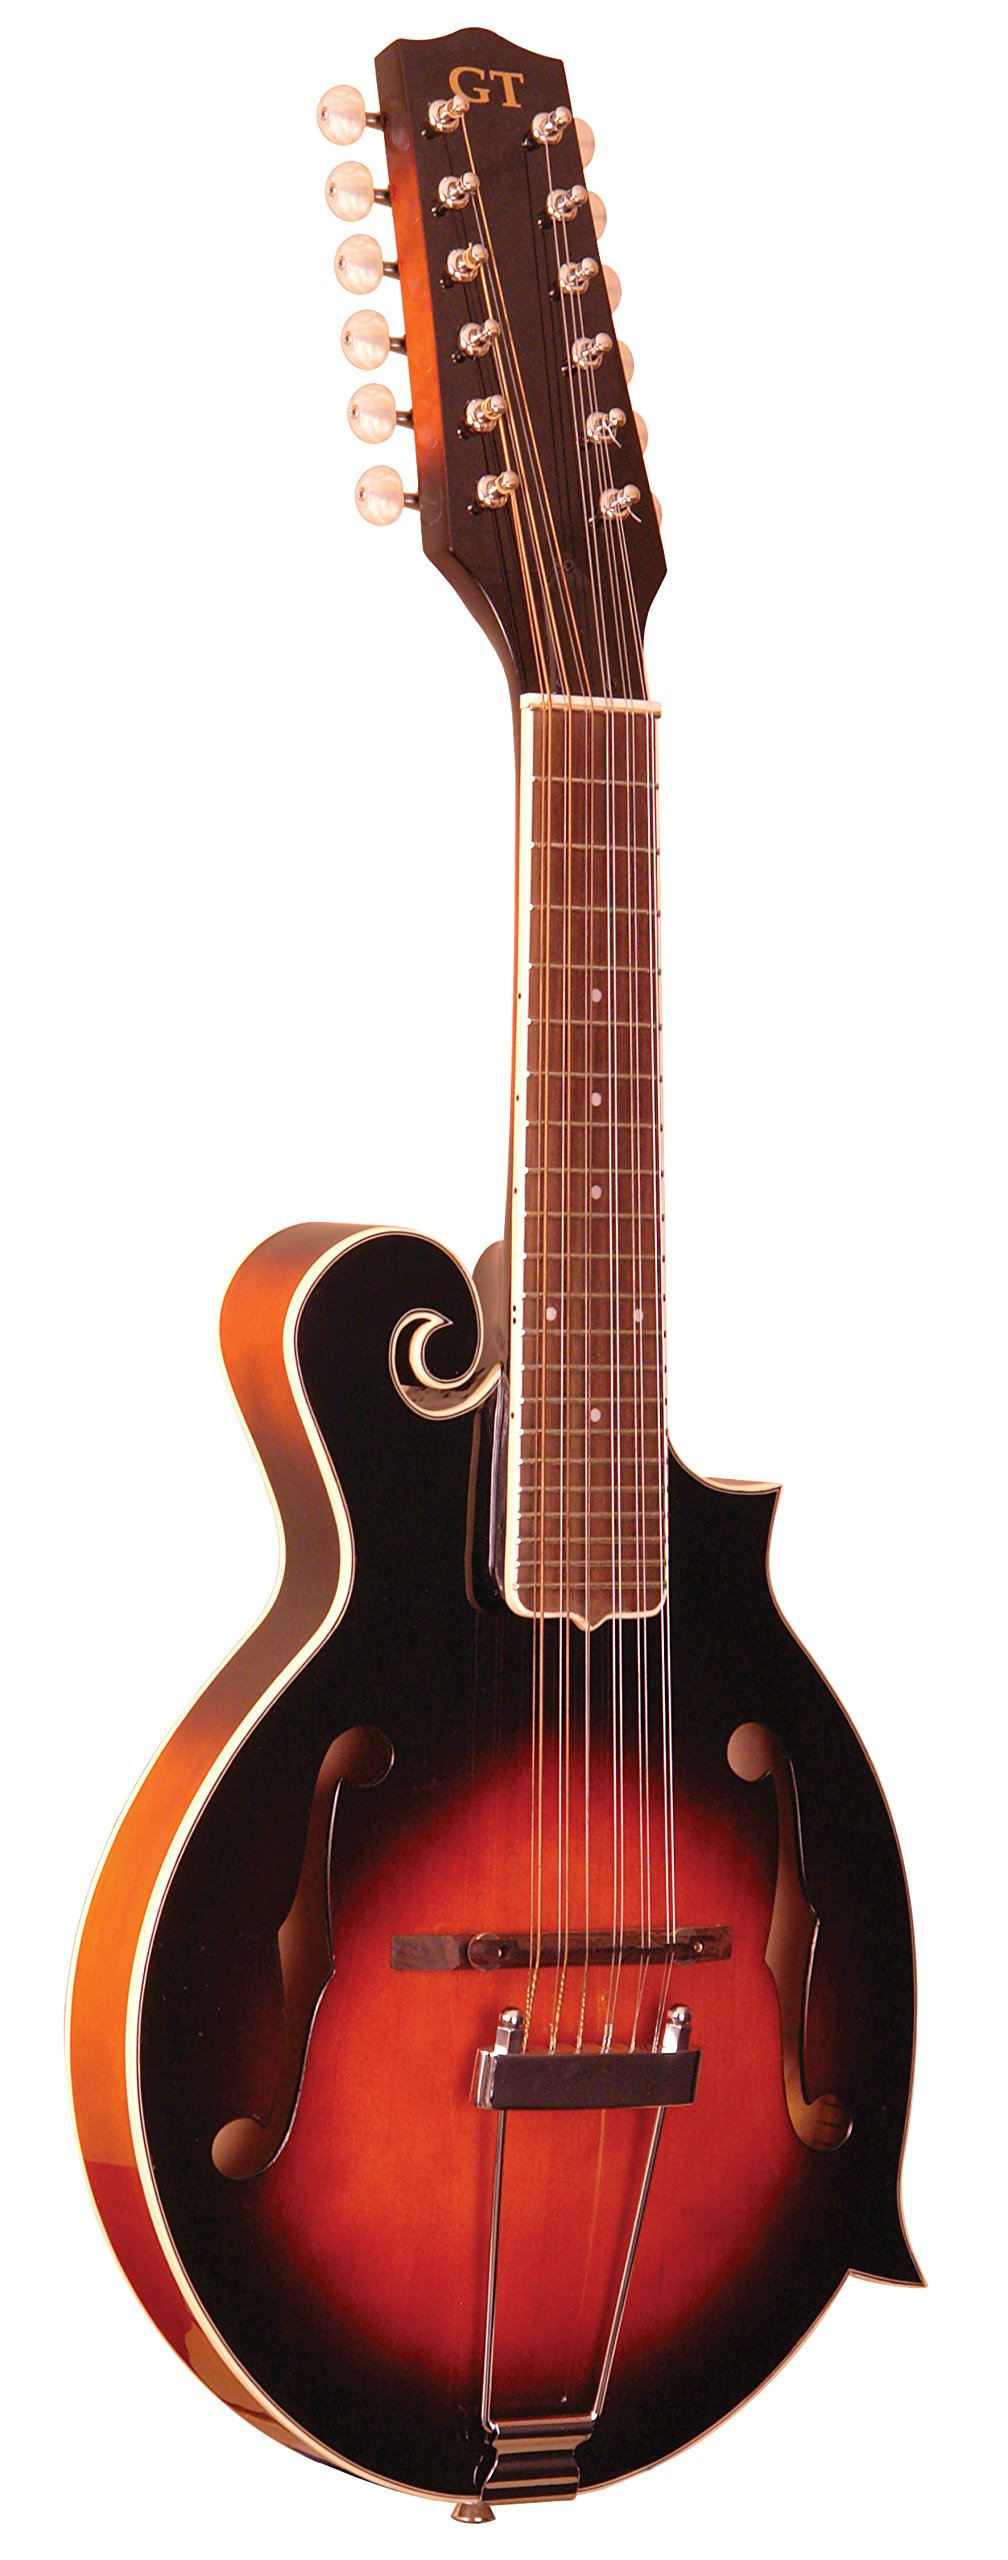 Gold Tone, 12-String Guitar Mandolin (F-12) by Gold Tone (Image #1)